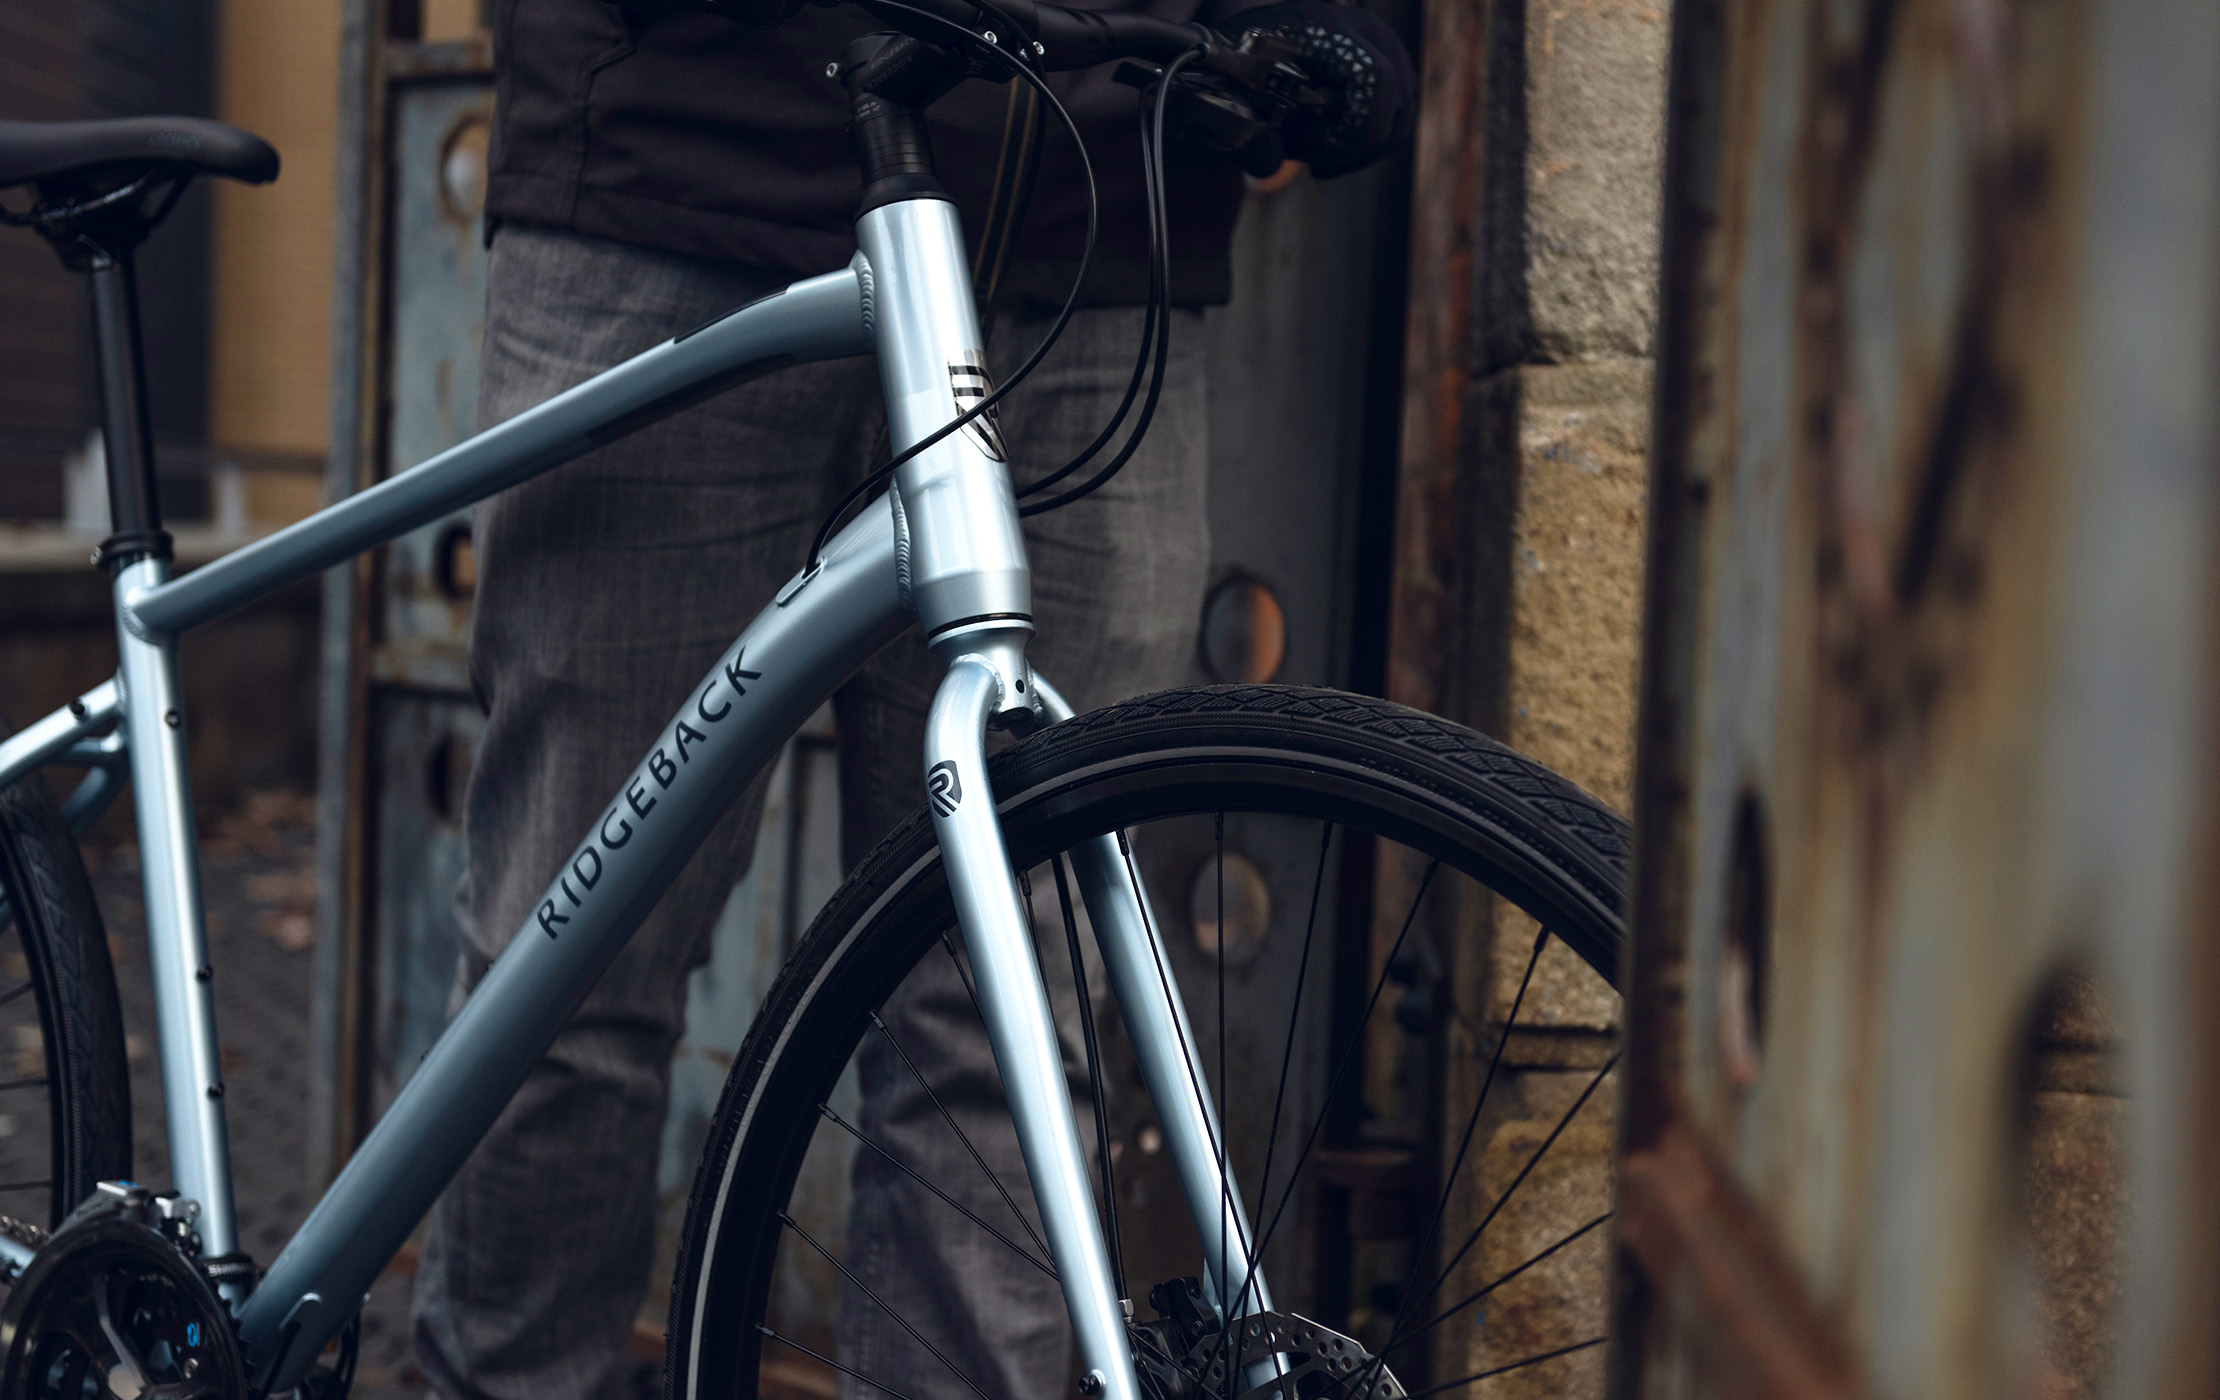 f82bf8bceea With the introduction of the Shimano hydraulic disc brake on the Vanteo as  well it all comes together to create the perfect sleek, comfortable and  stylish ...